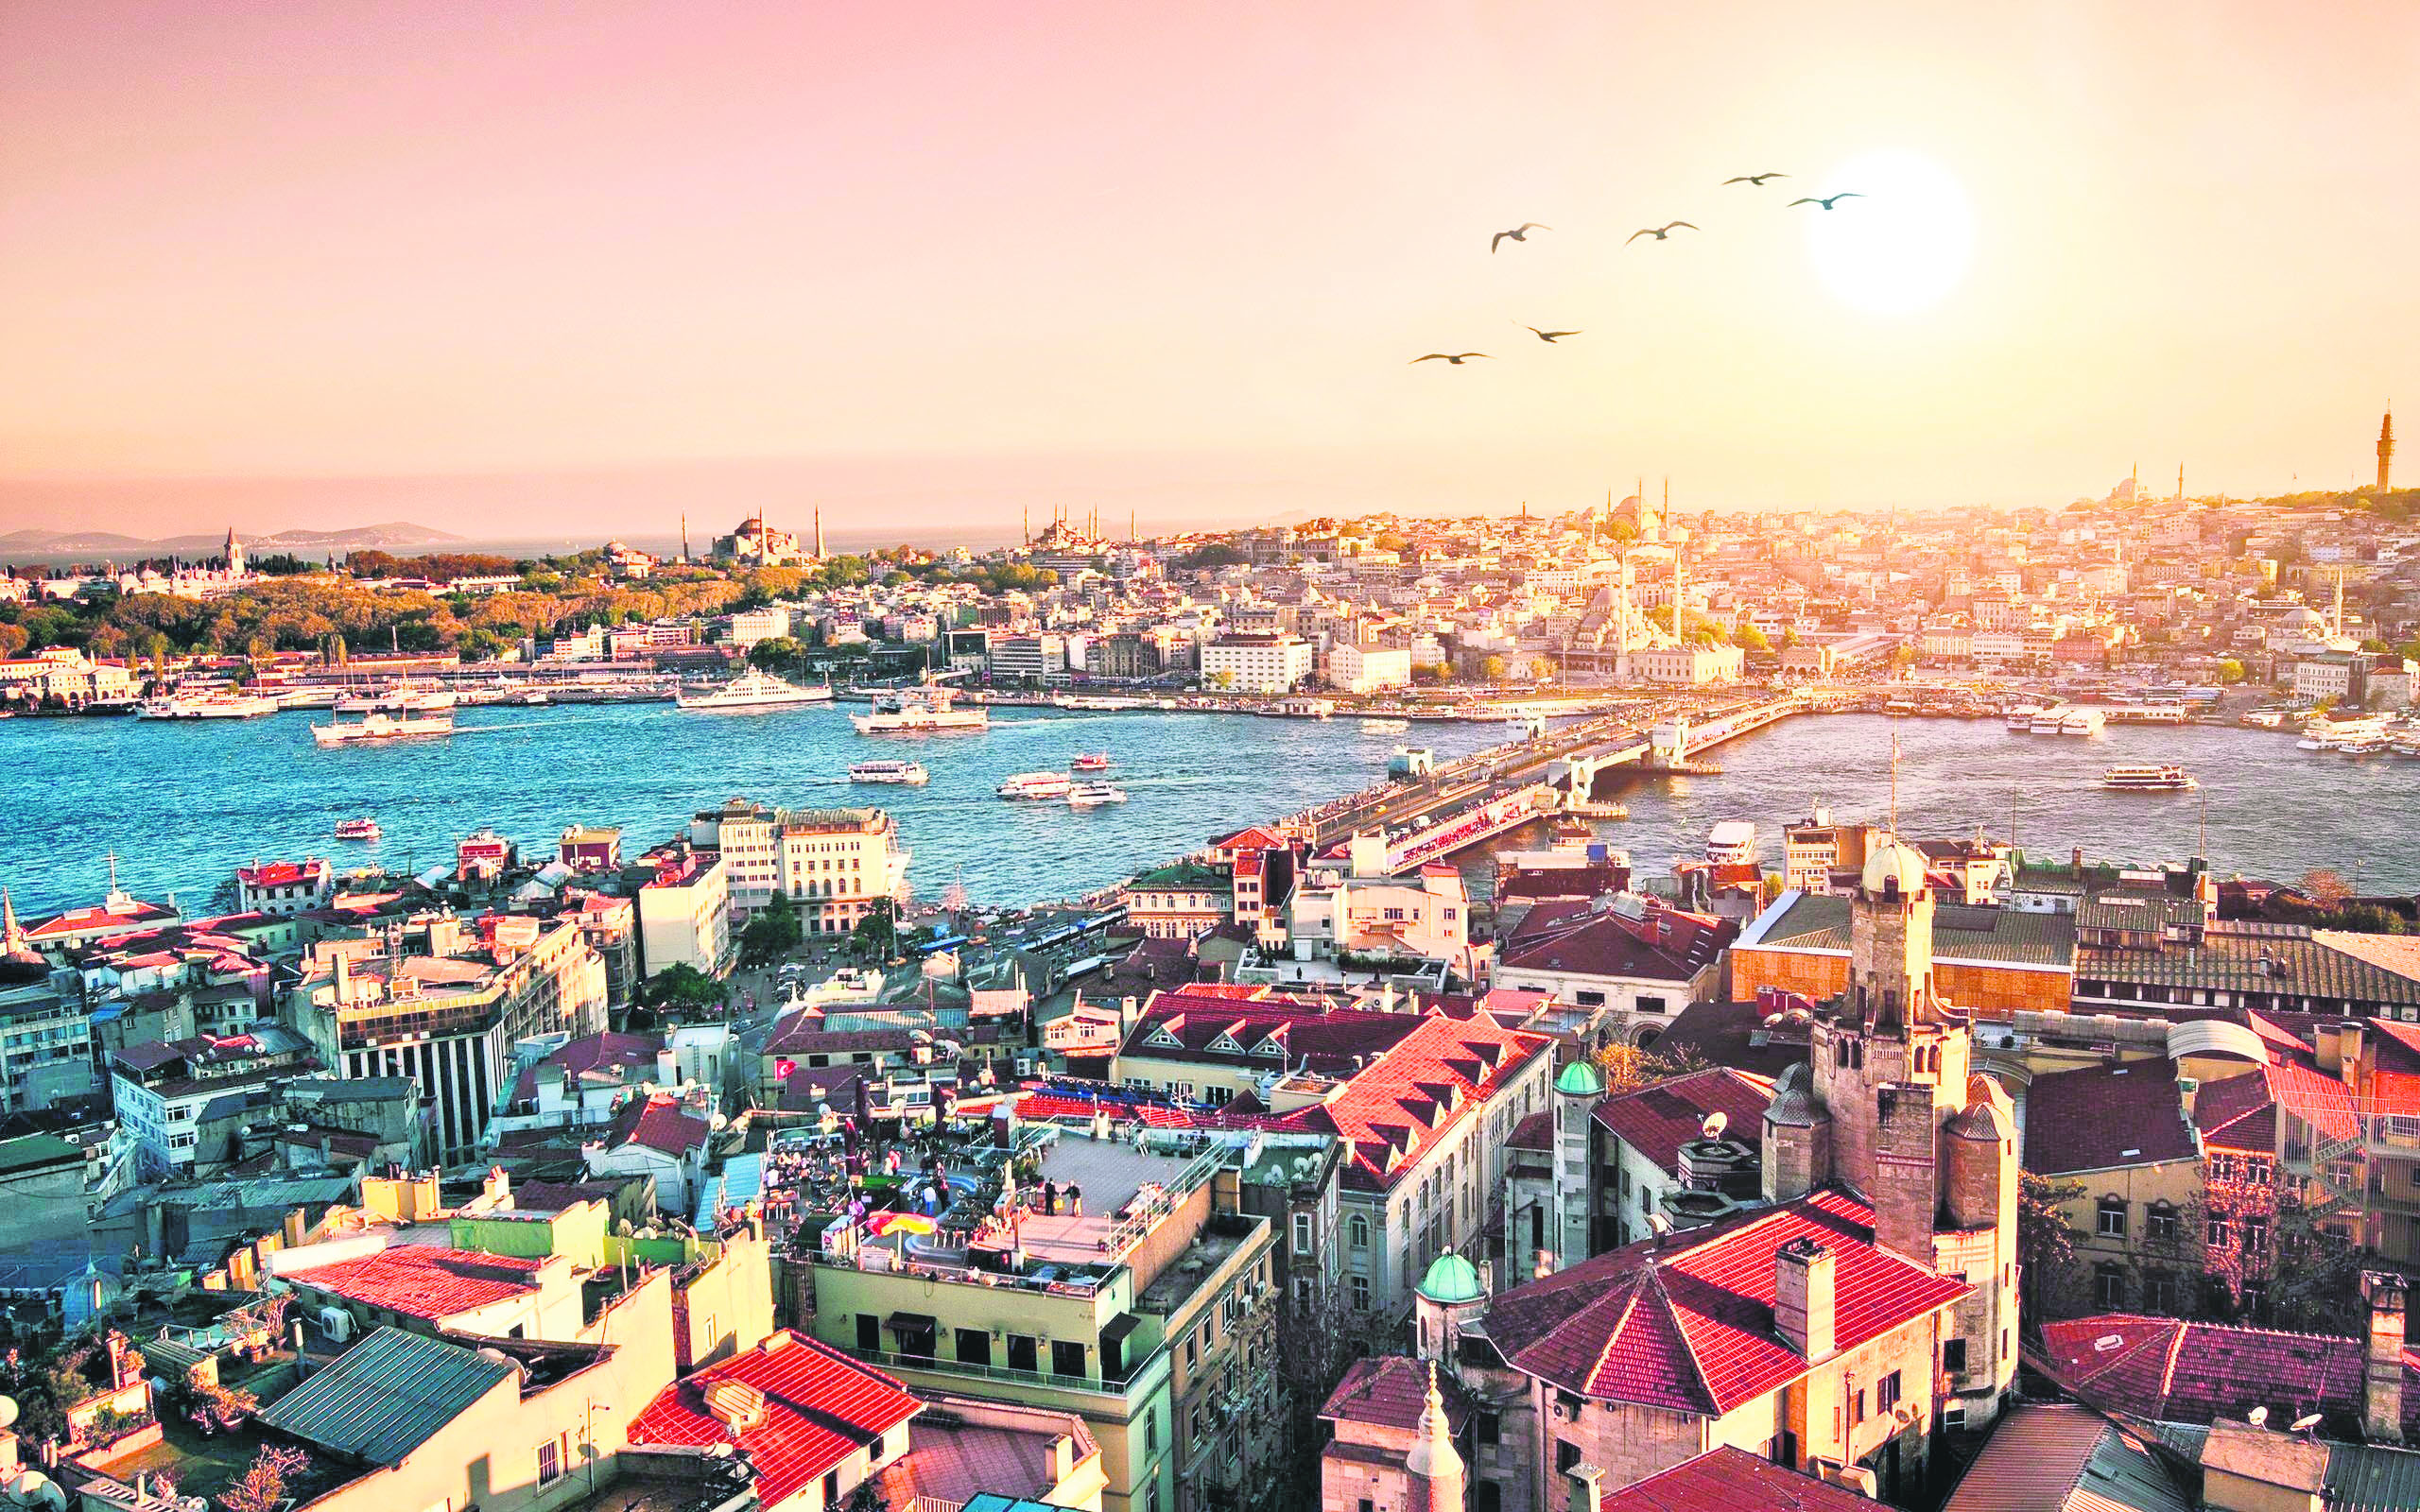 Sanset over Istanbul watched from the highest observation deck in the city.